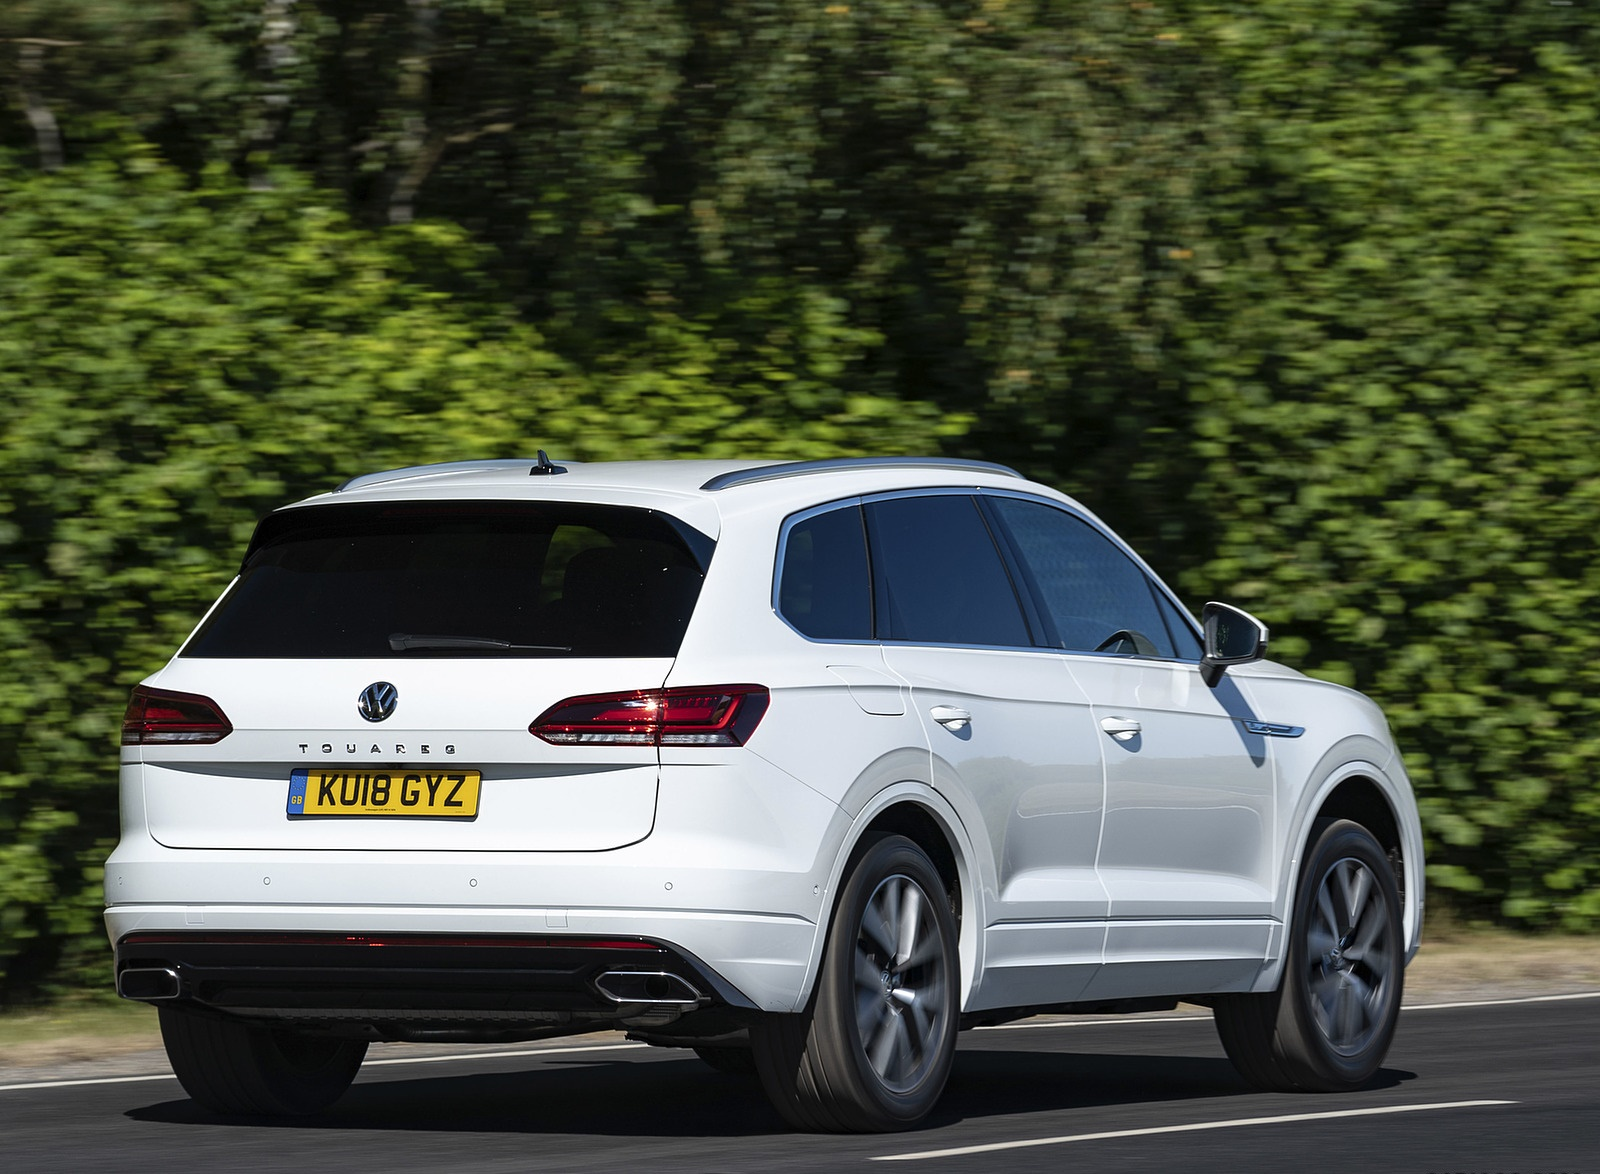 2019 Volkswagen Touareg V6 TDI R-Line (UK-Spec) Rear Three-Quarter Wallpapers (4)